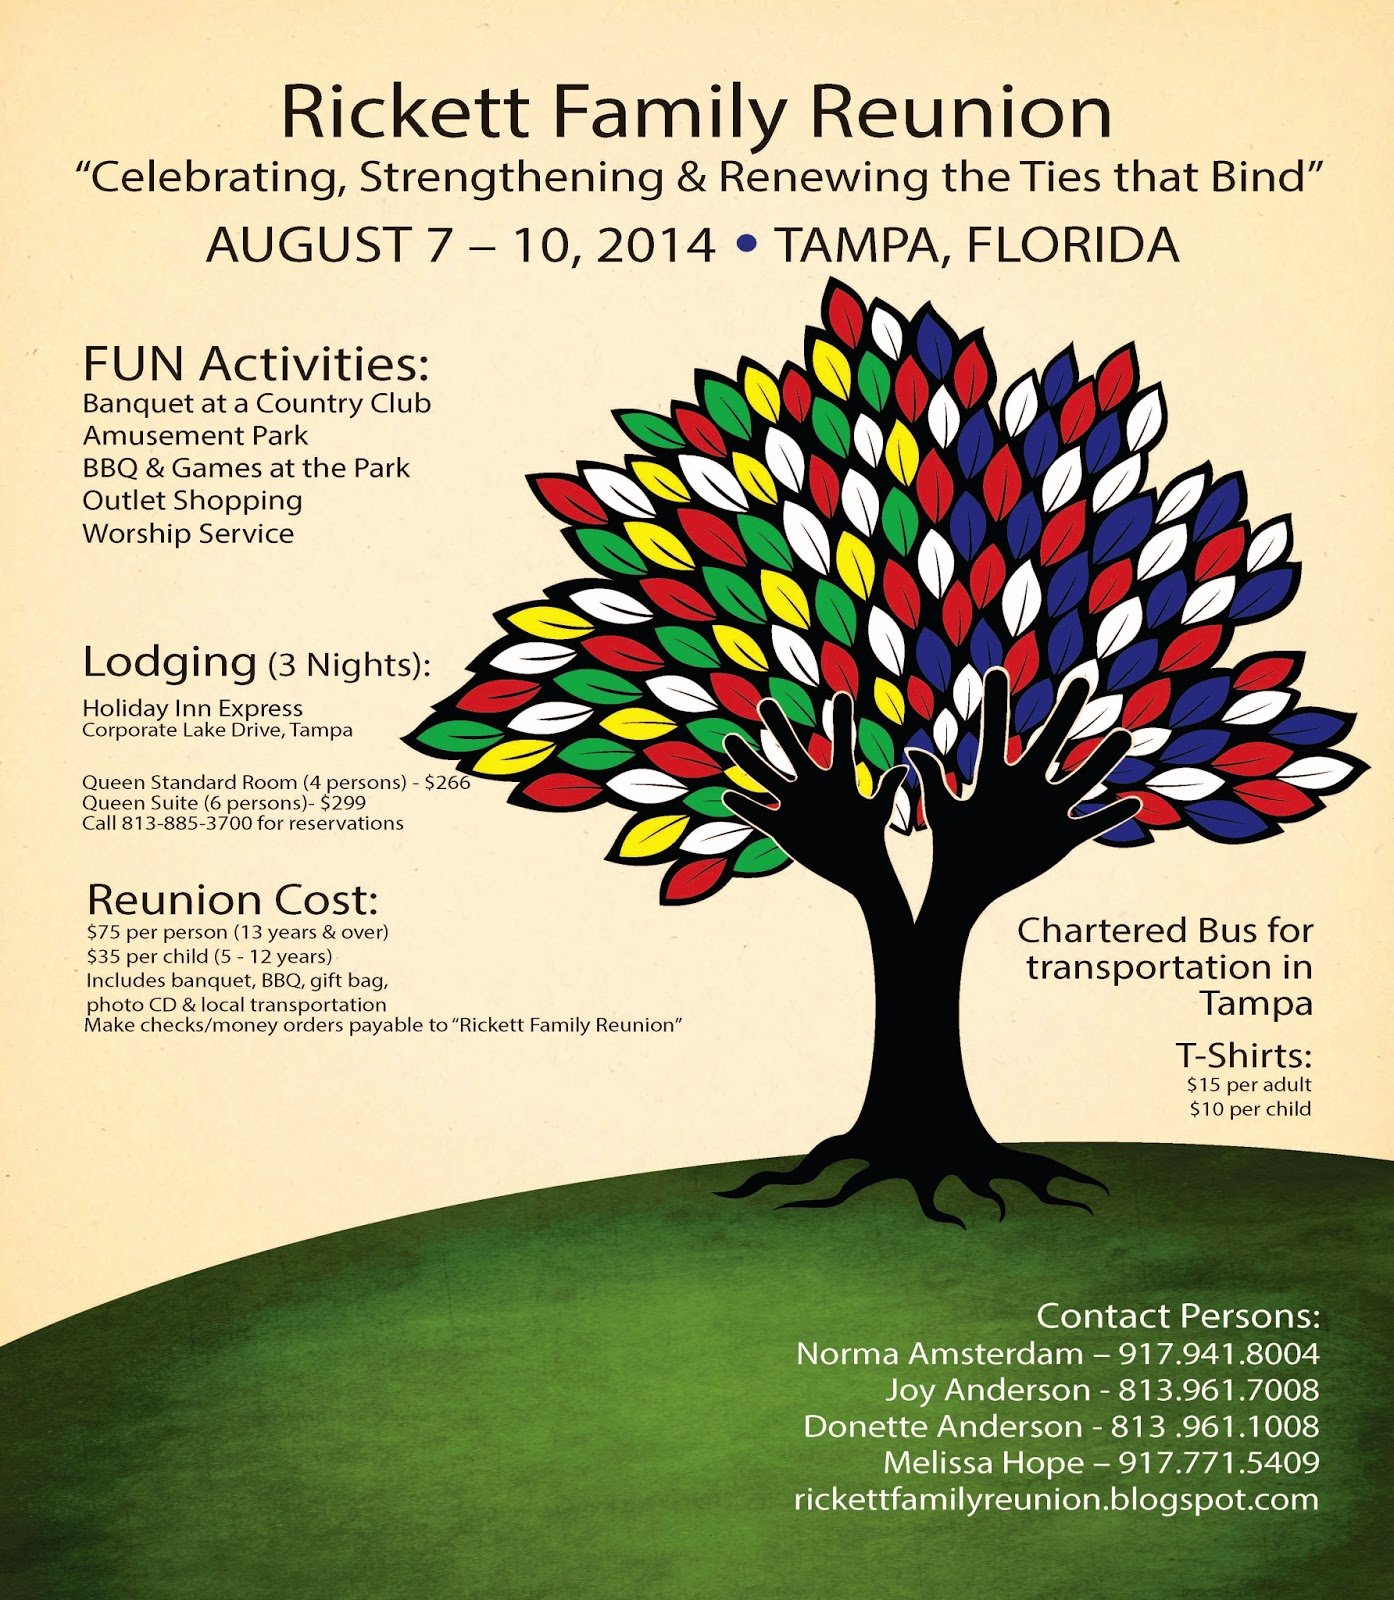 Rickett Family Reunion Blog